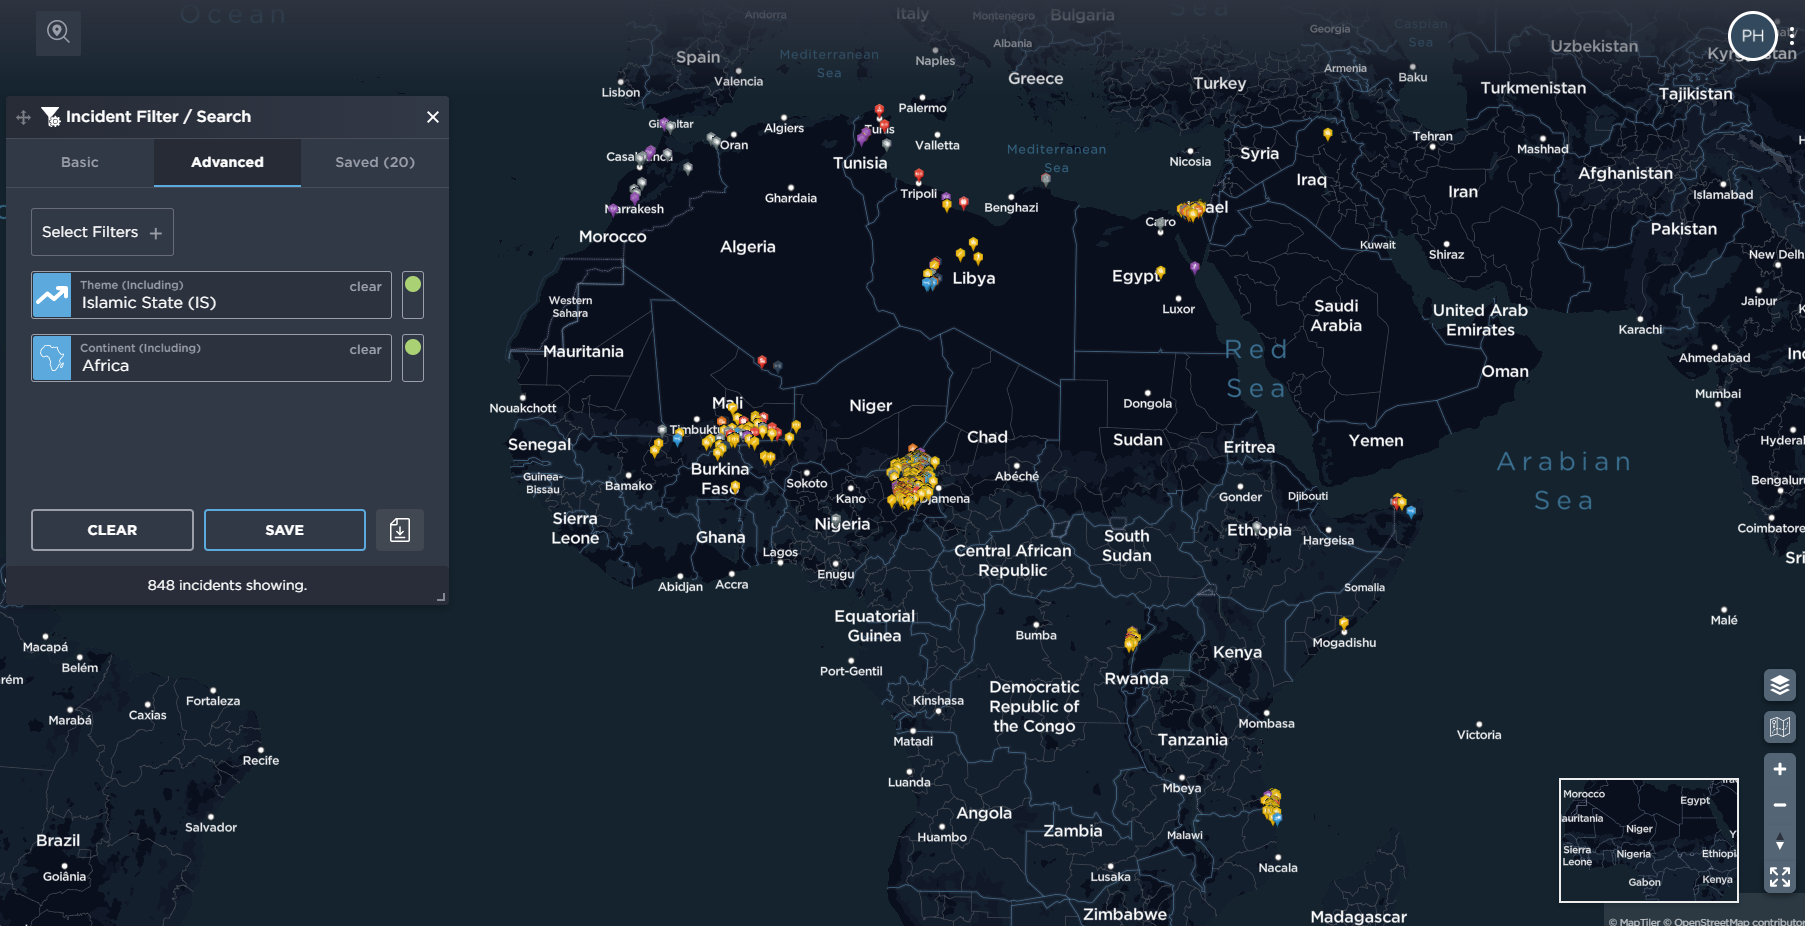 ISIS in Africa activity of Islamic State spread of violence